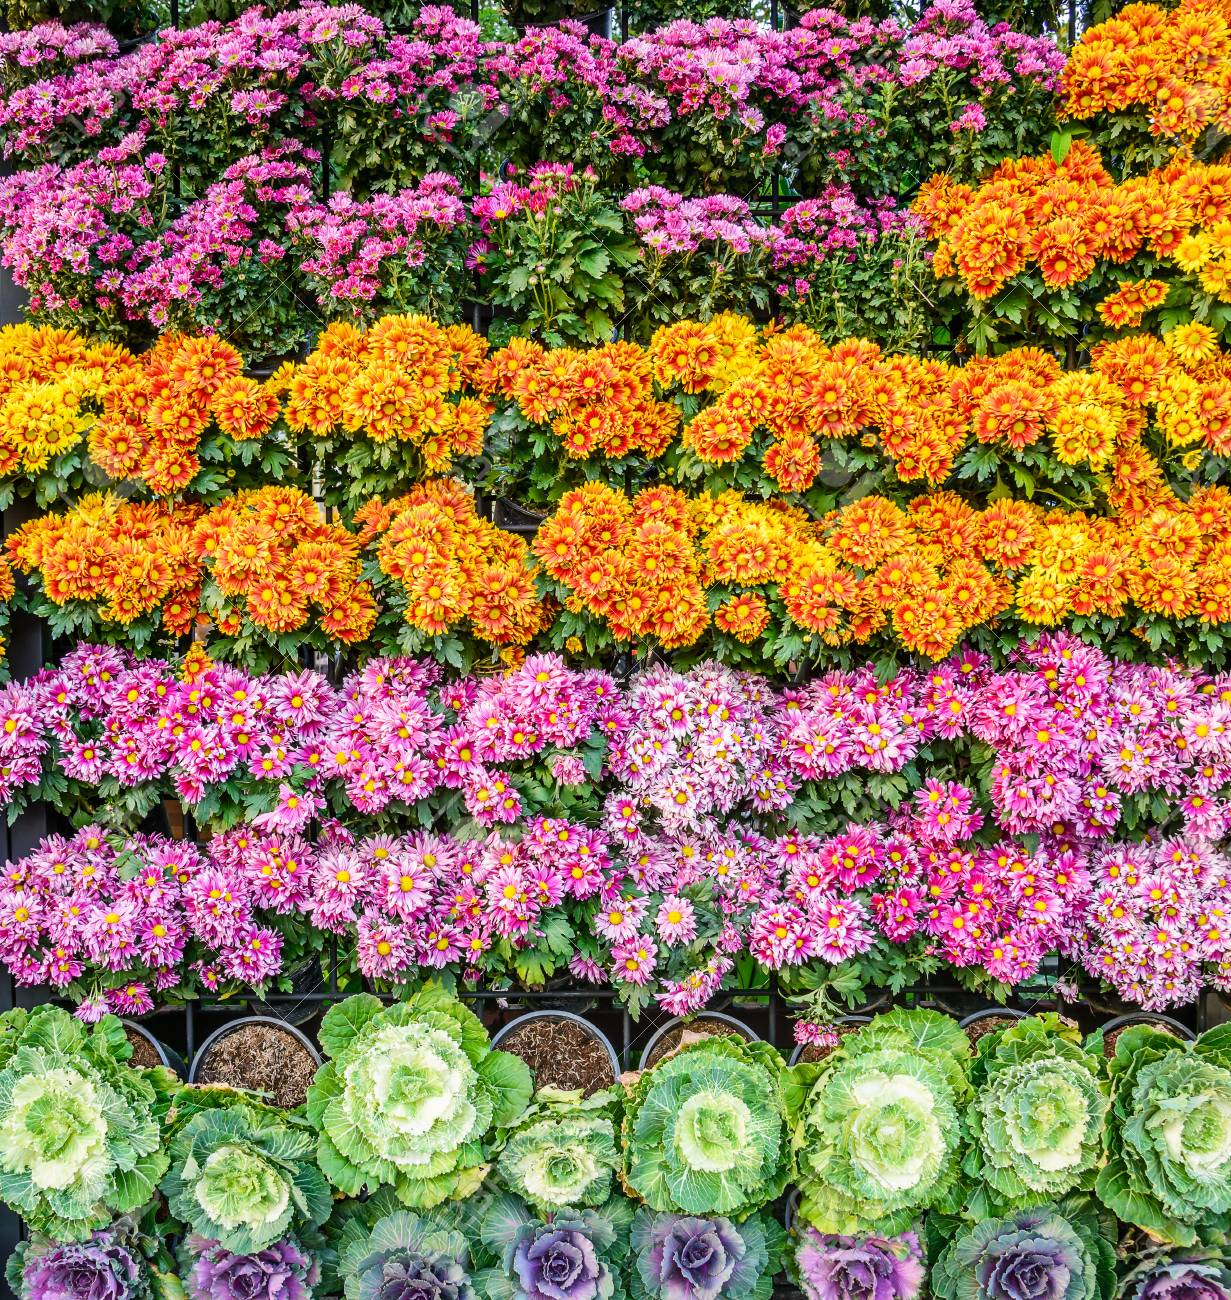 High Background Stock Vegetables That Decorated Backdrop Colorfulflowers Background Stock Photo Vertical Garden Floral Design Vertical Garden Floral garden Vegetable Vertical Garden